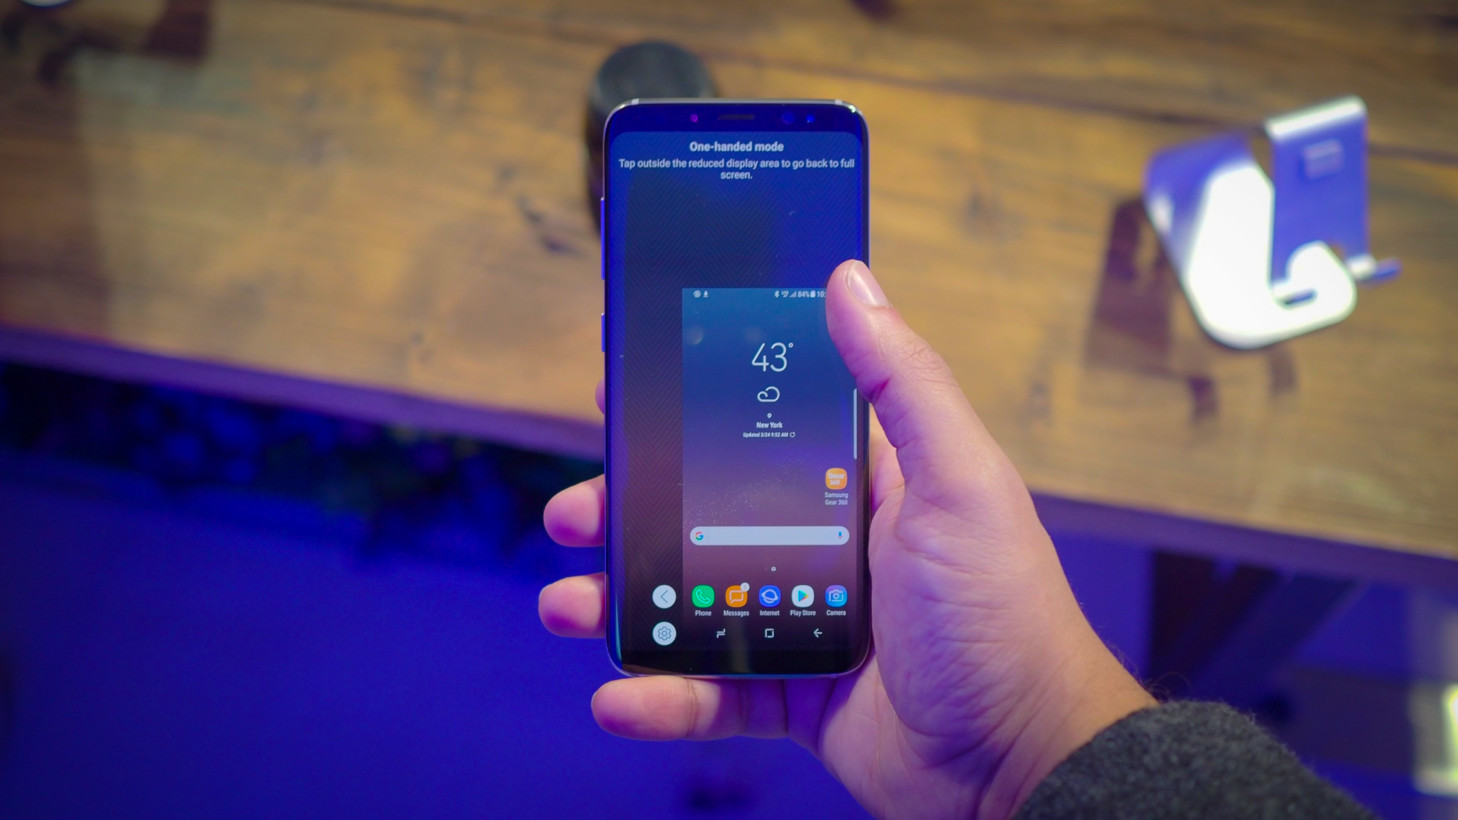 Every smartphone should include a one-handed mode